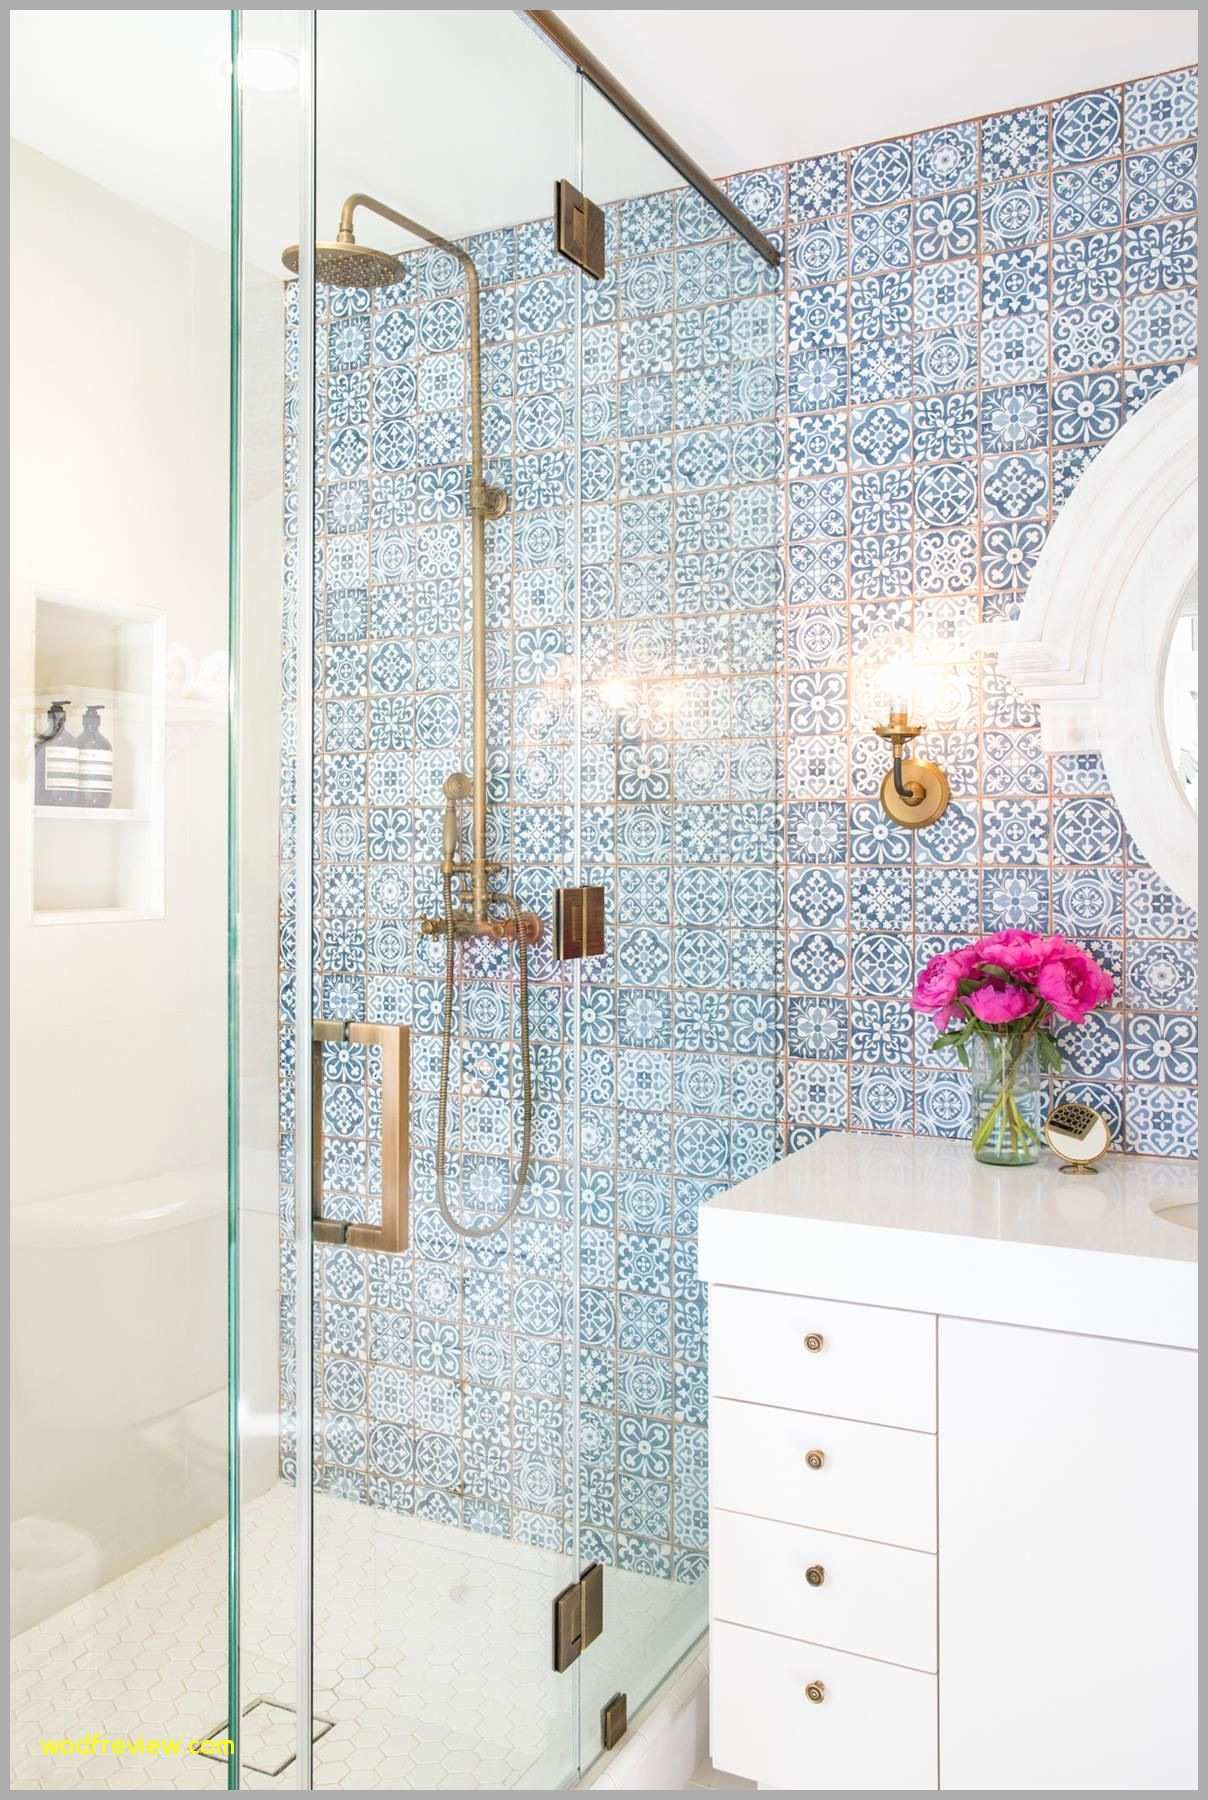 Feel Inspired By These Bathroom Tile Trends For 2019 15 Bathroom Tile Trends Feel Inspired By These Bathroom Tile Trends For 2019 Feel Inspired By These Bathroom Tile Trends For 2019 16